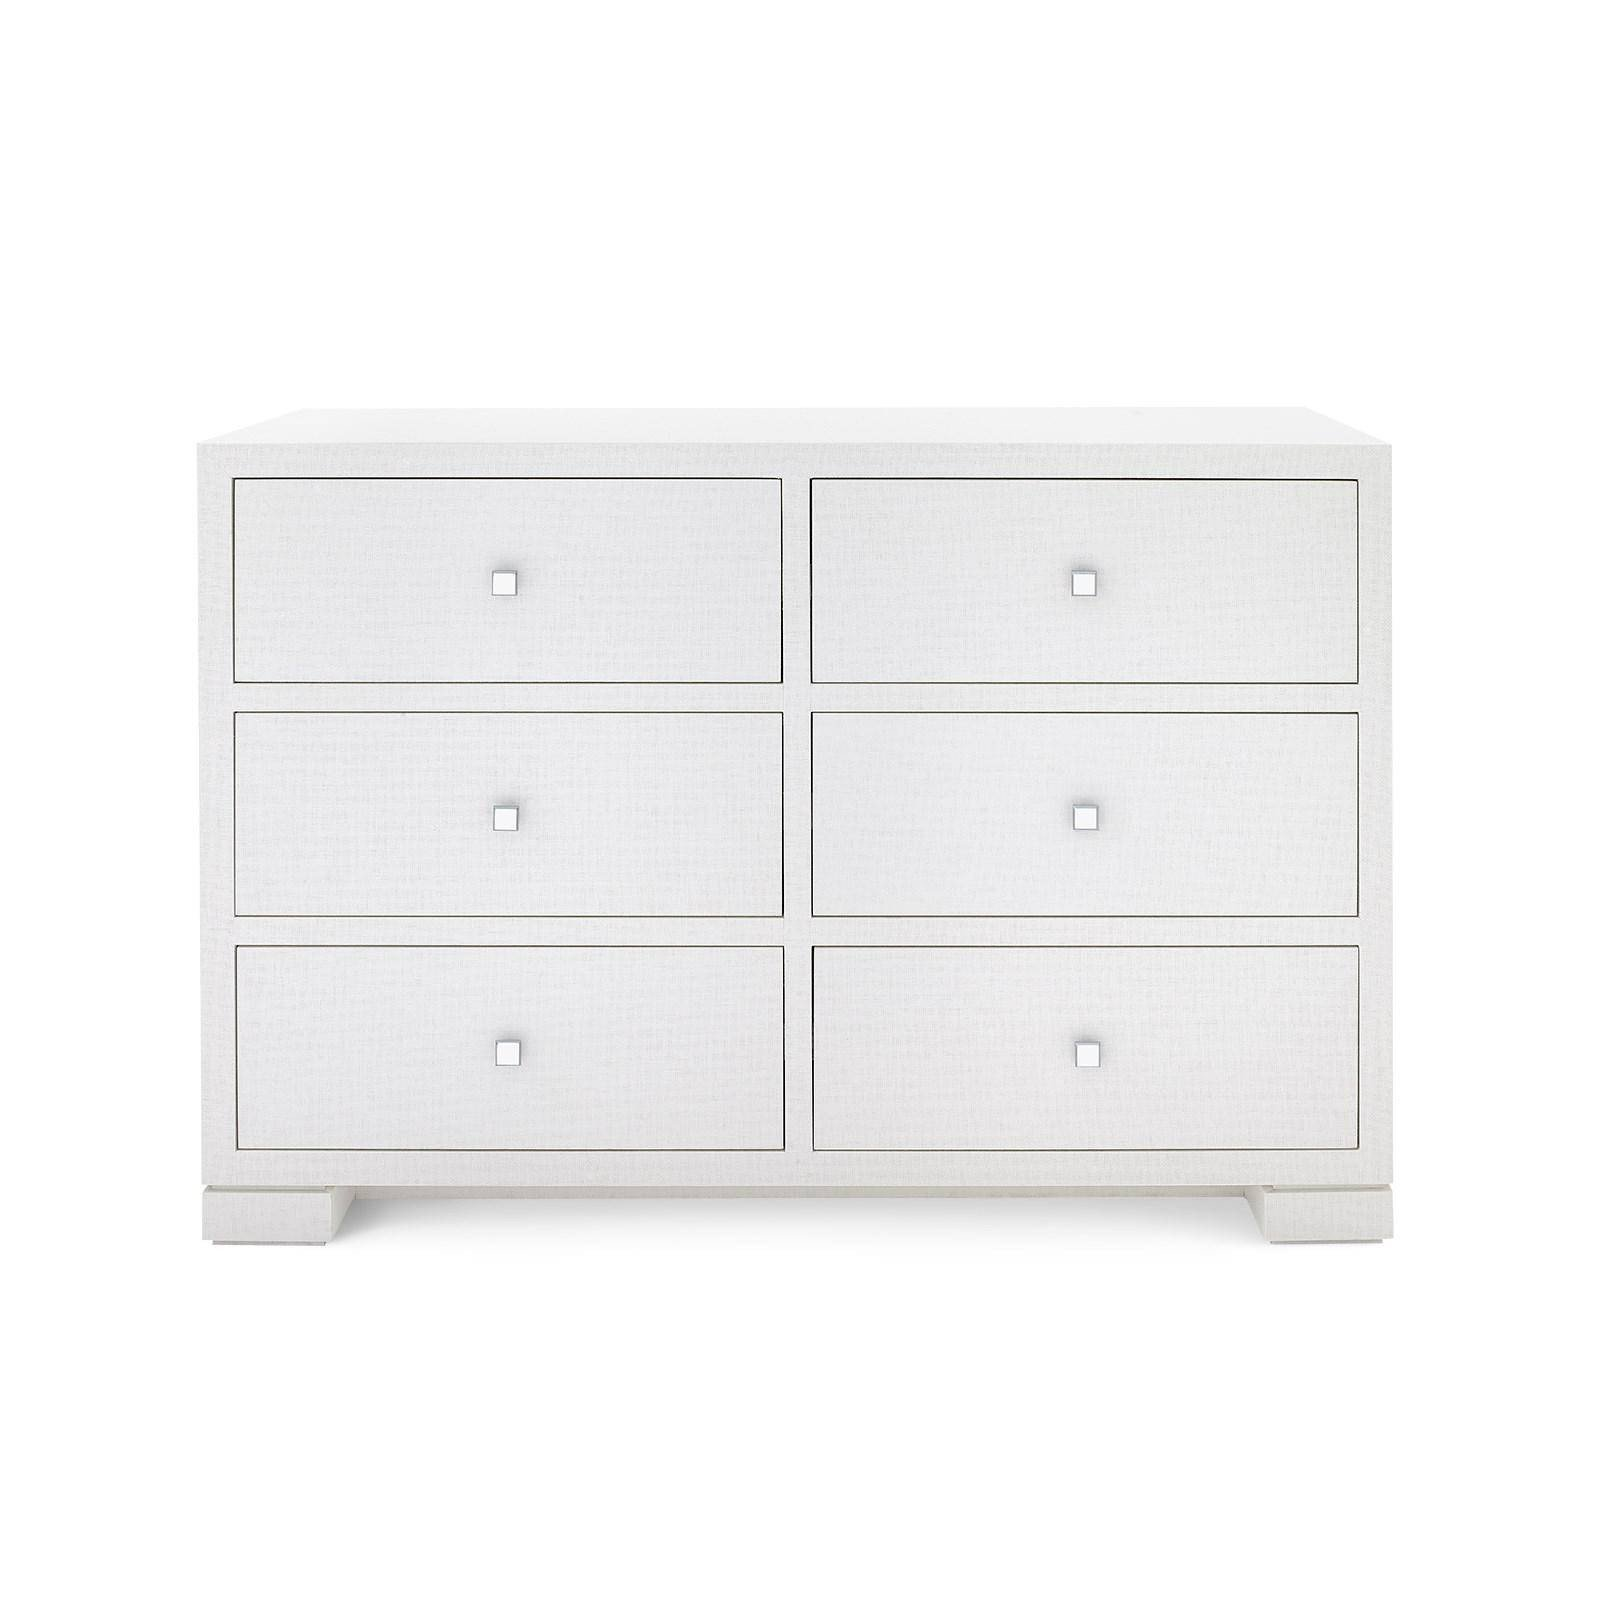 Bedroom Dressers and Chests Awesome Bungalow 5 Frances Modern White Lacquered Grasscloth 6